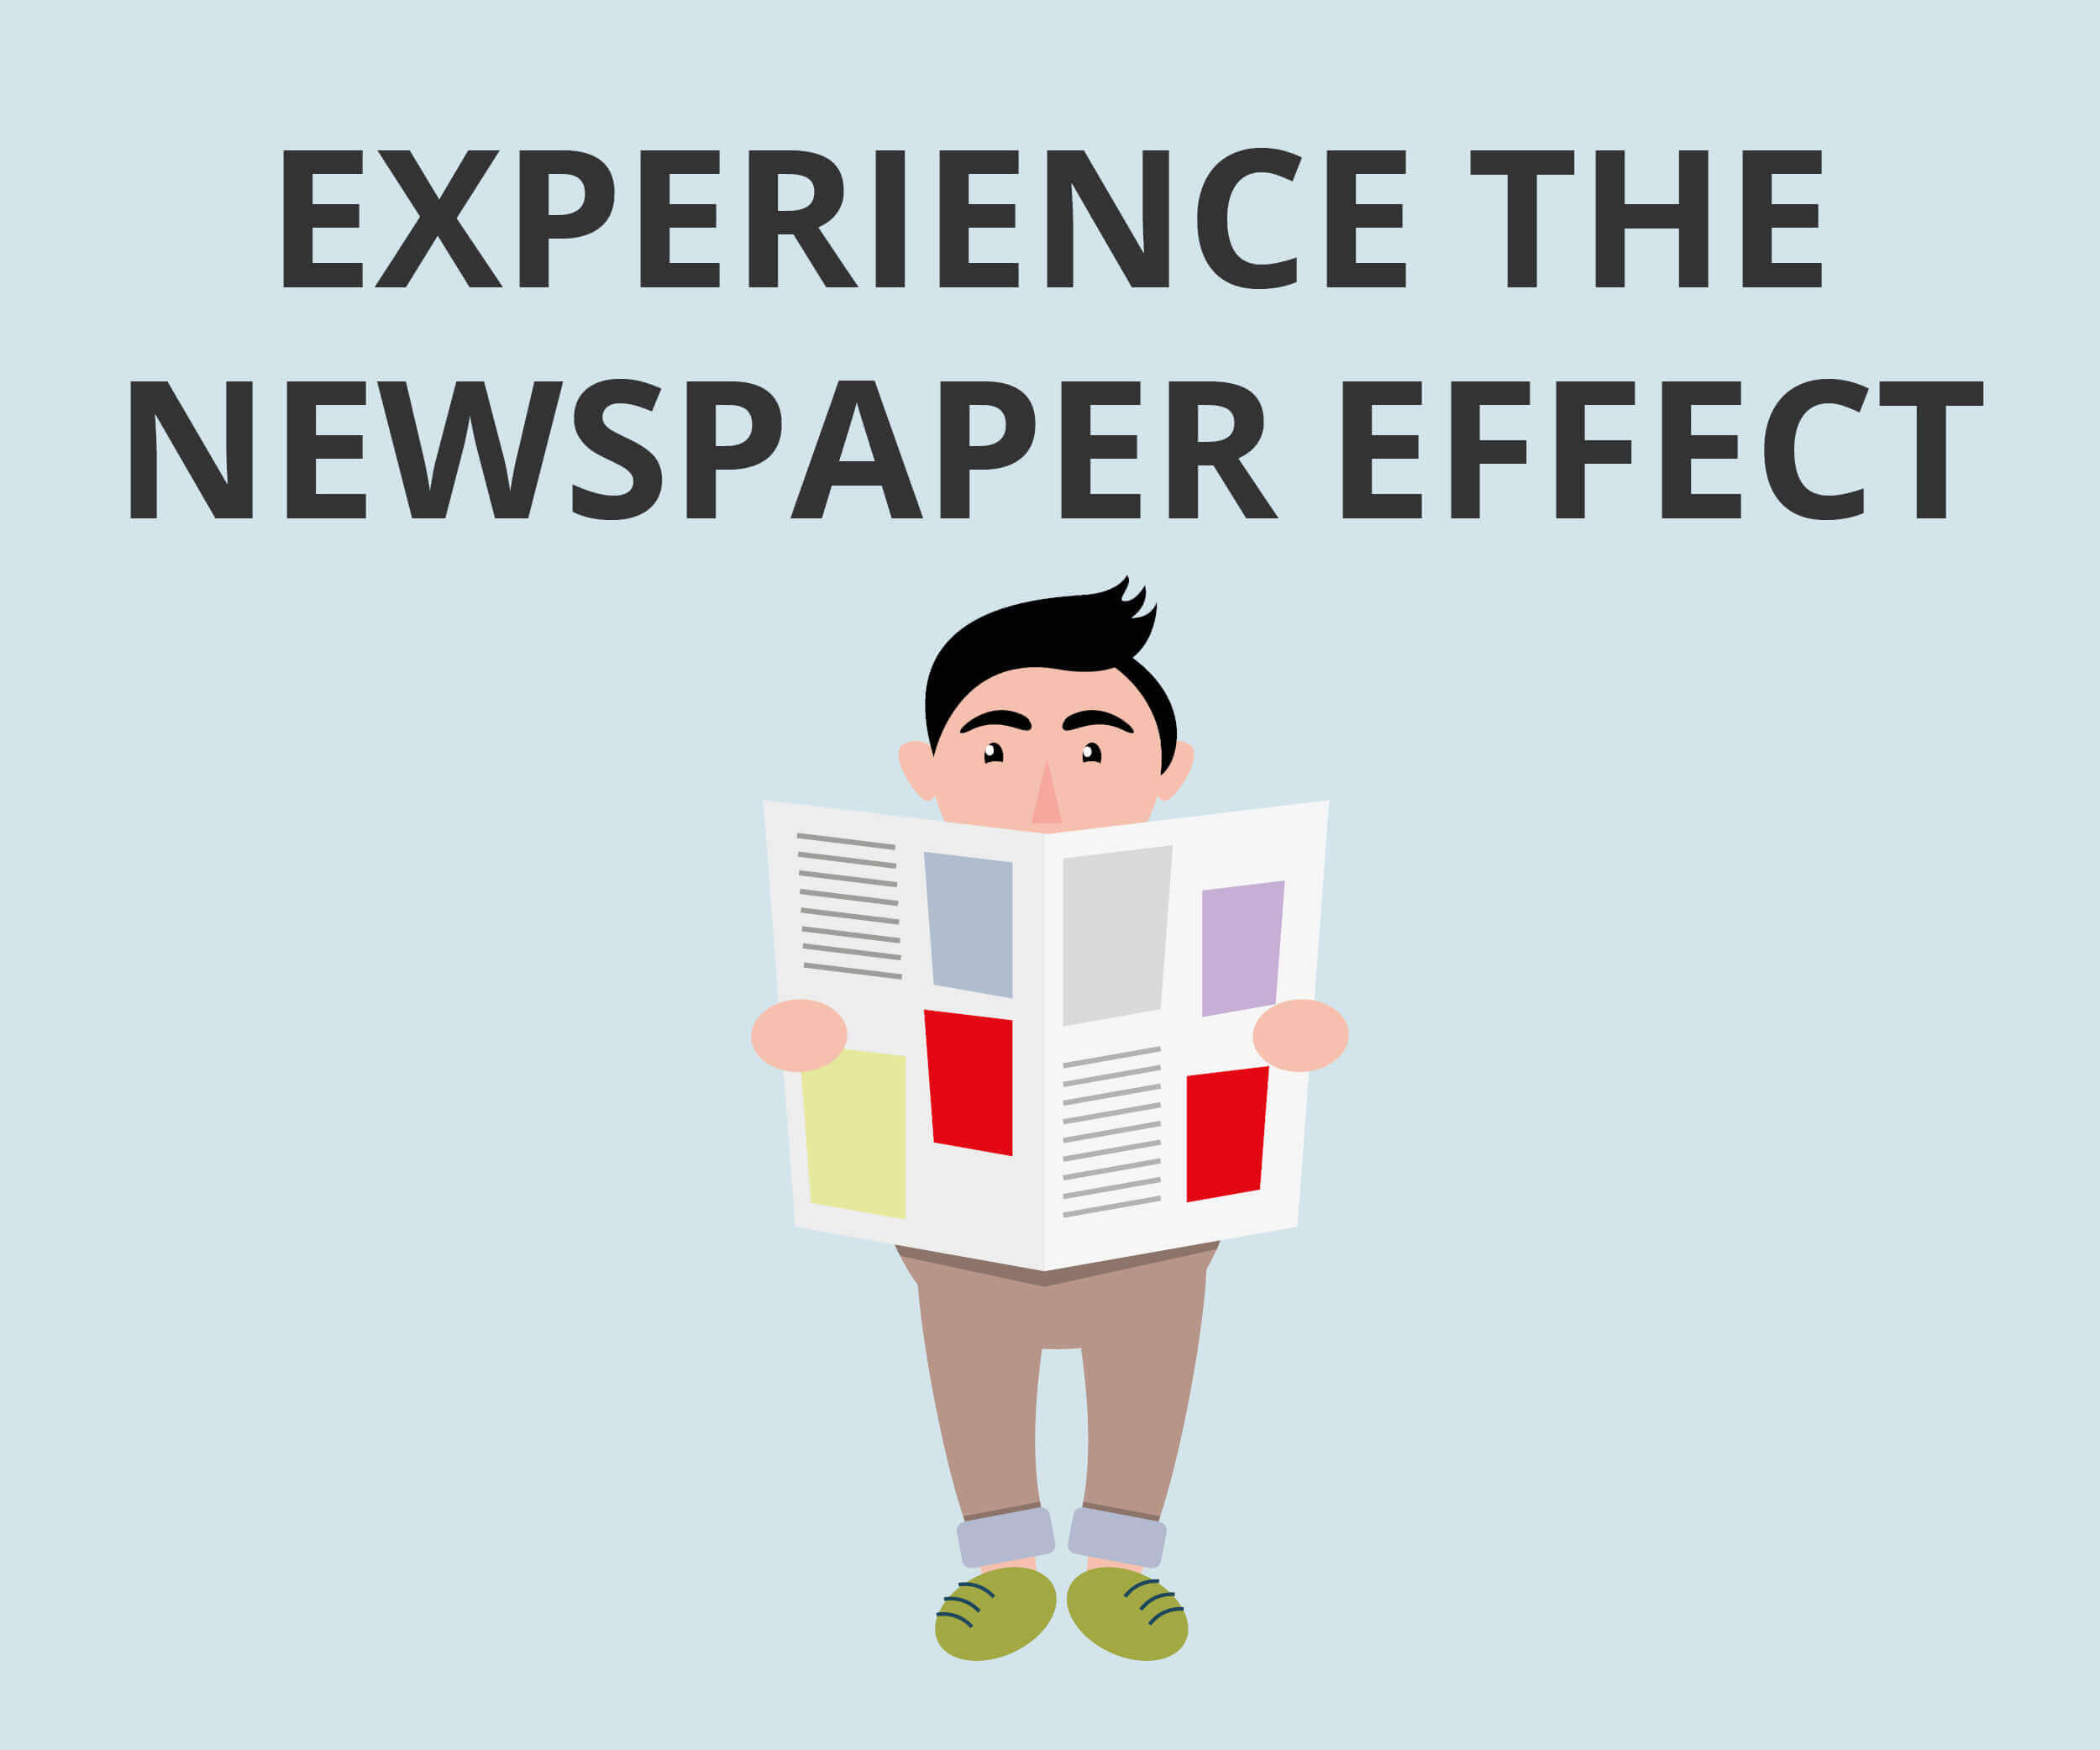 Experience the nespaper effect